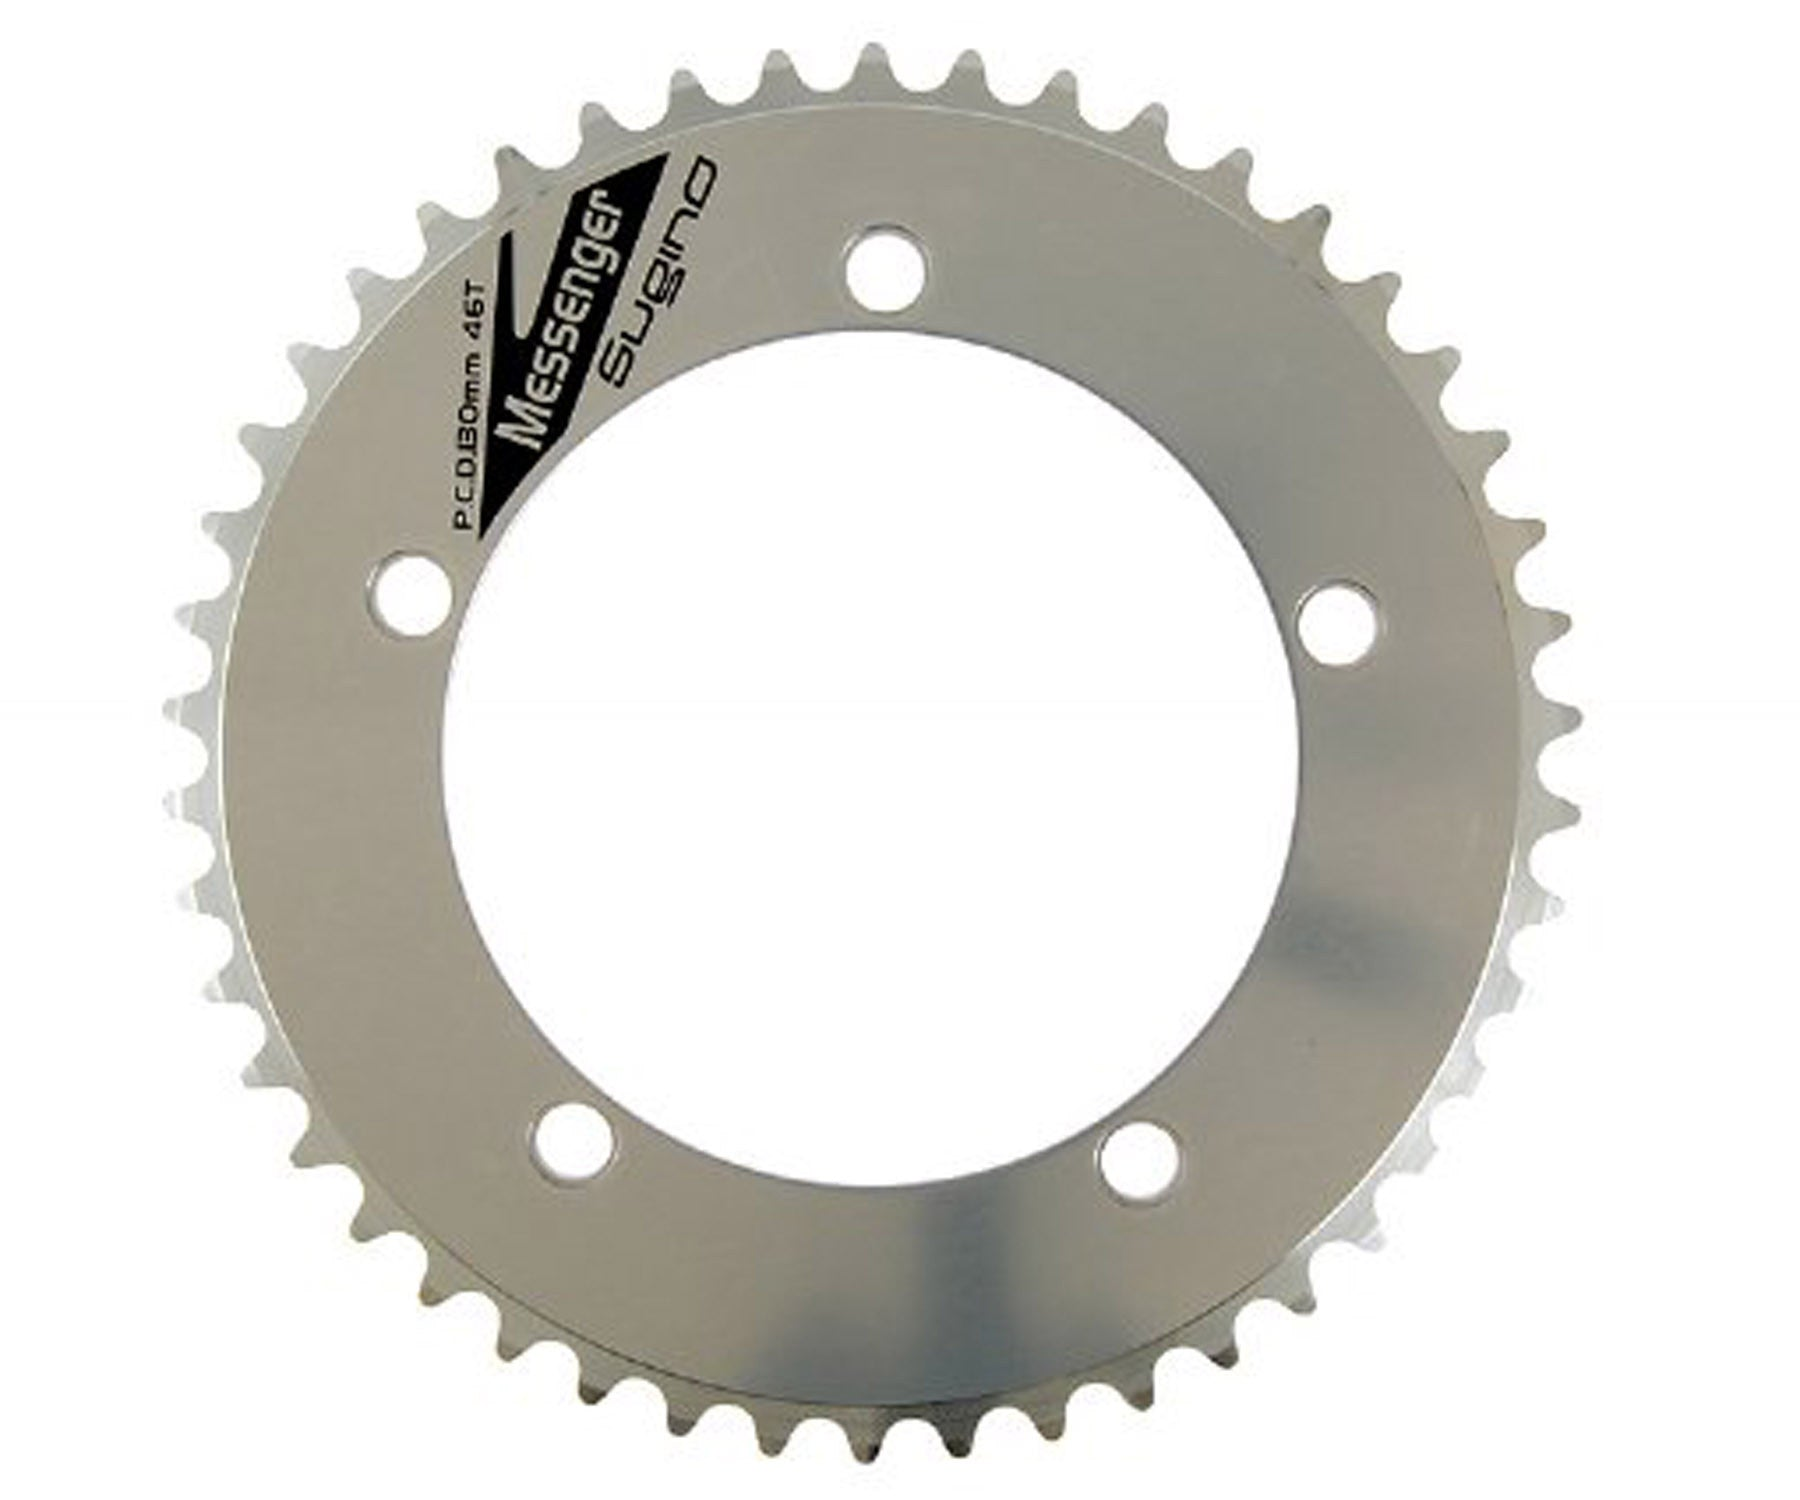 Sugino Messenger chainring - Retrogression